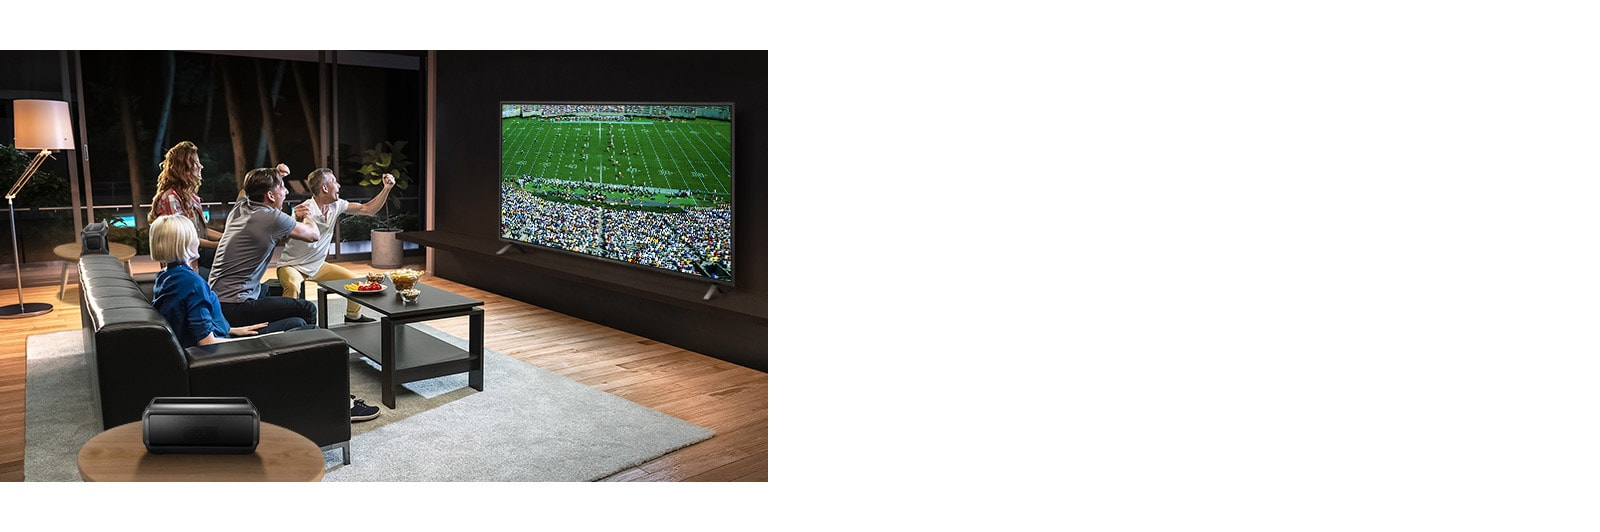 People watching sports game on TV in the living room with Bluetooth rear speakers.